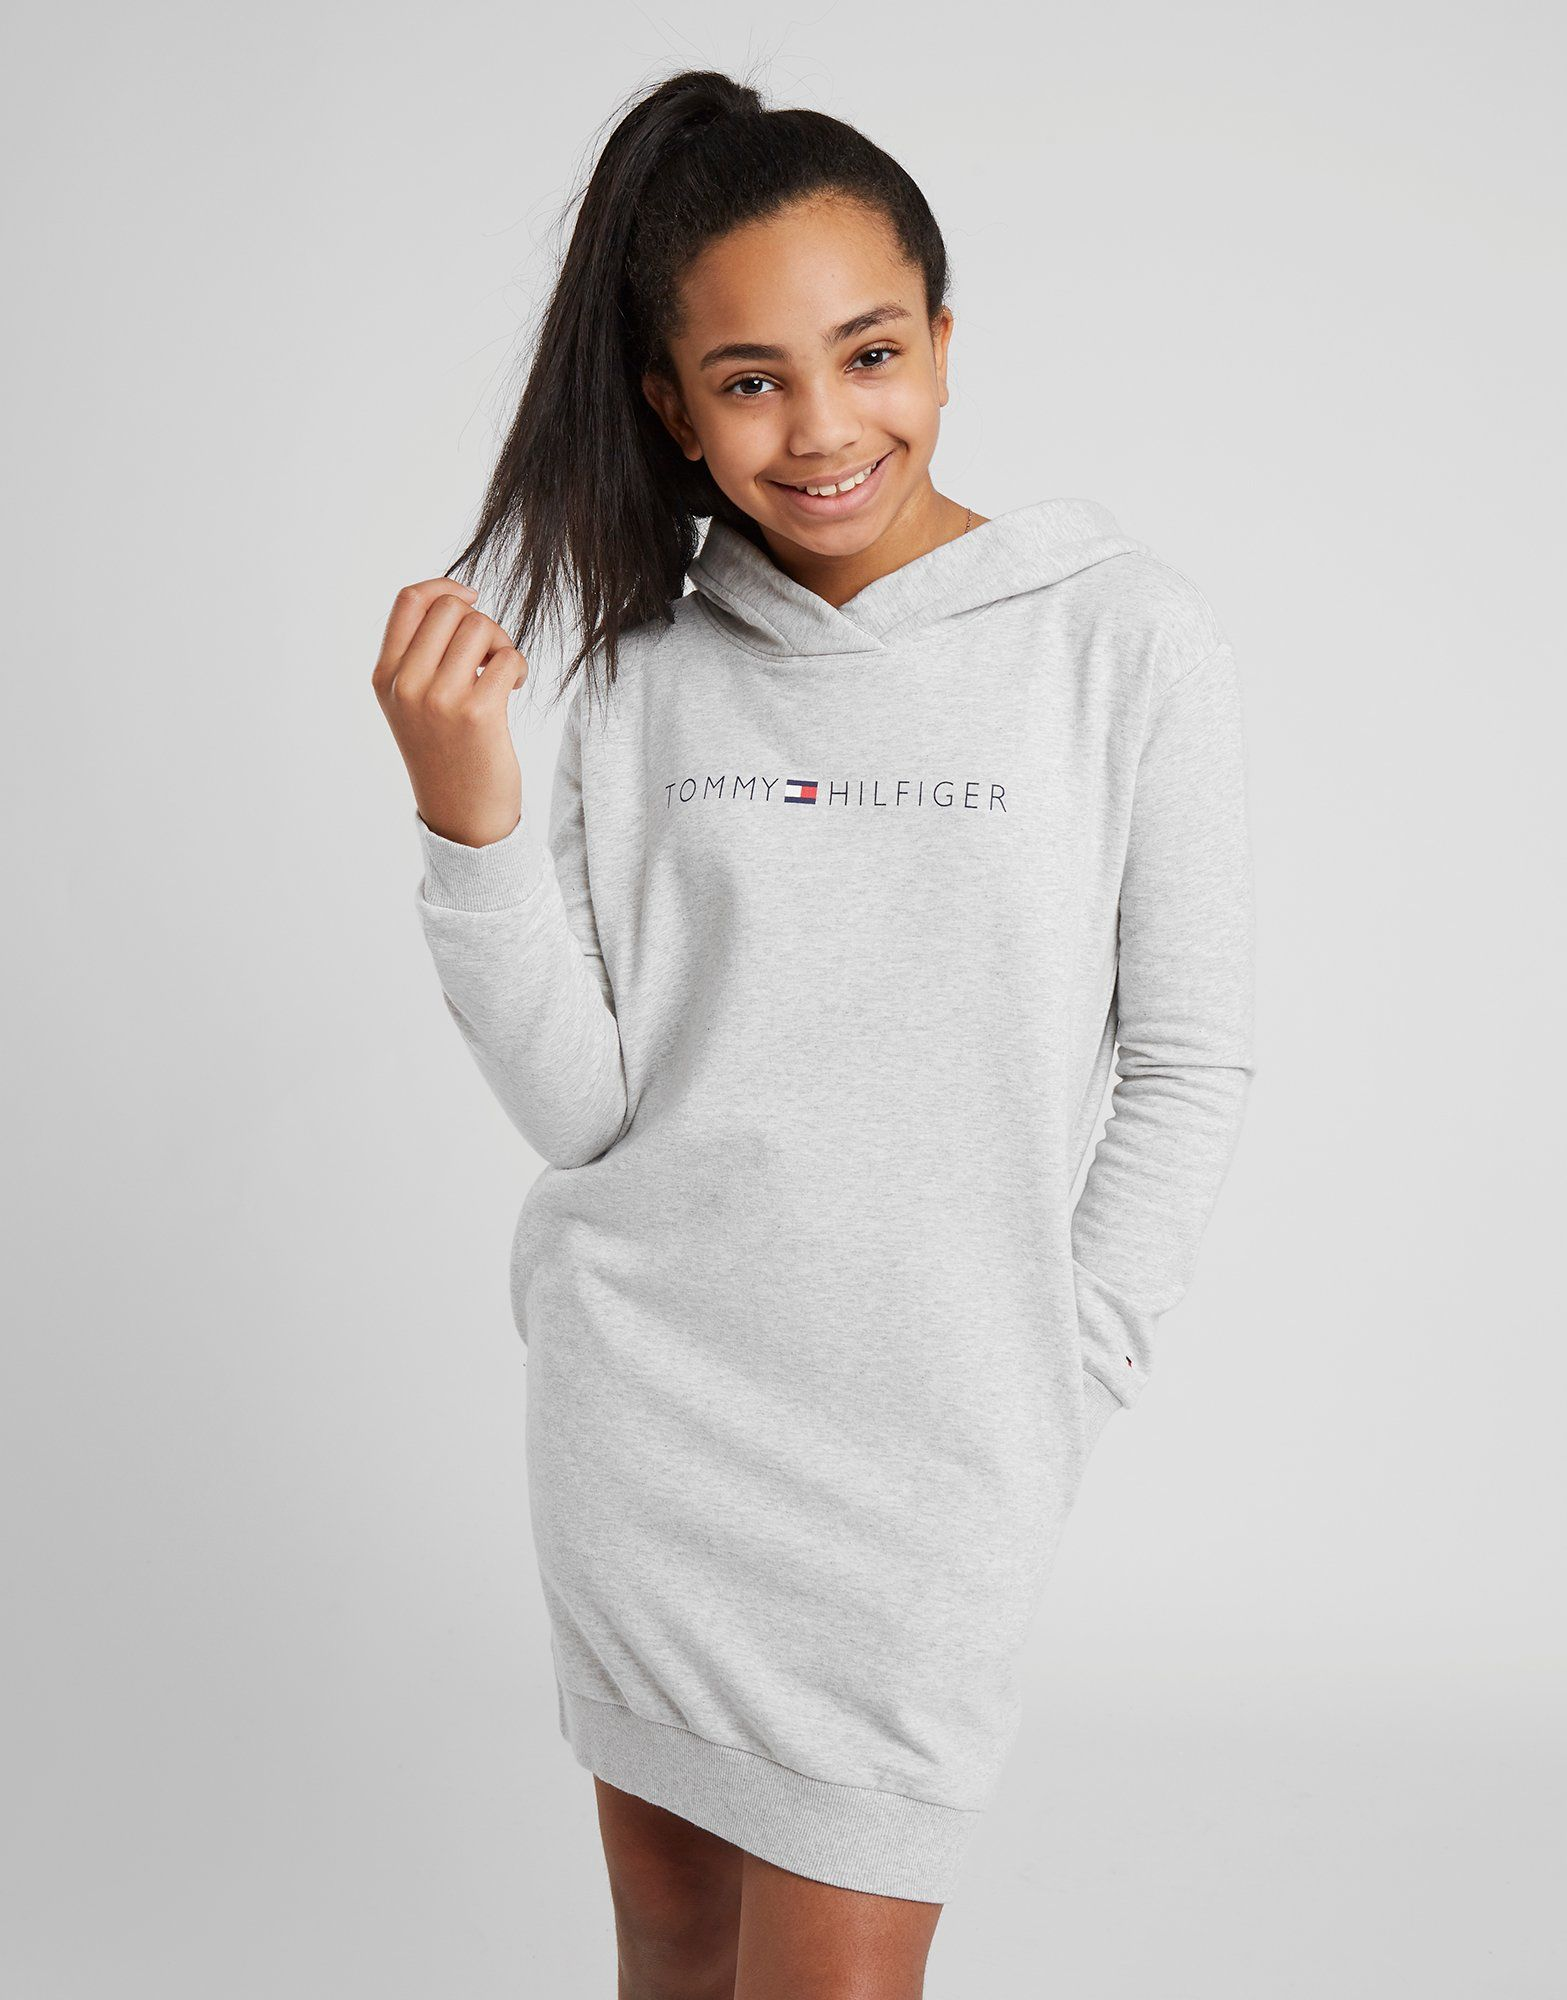 302f7c79f Tommy Hilfiger Girls' Essential Logo Hoodie Dress Junior | JD Sports